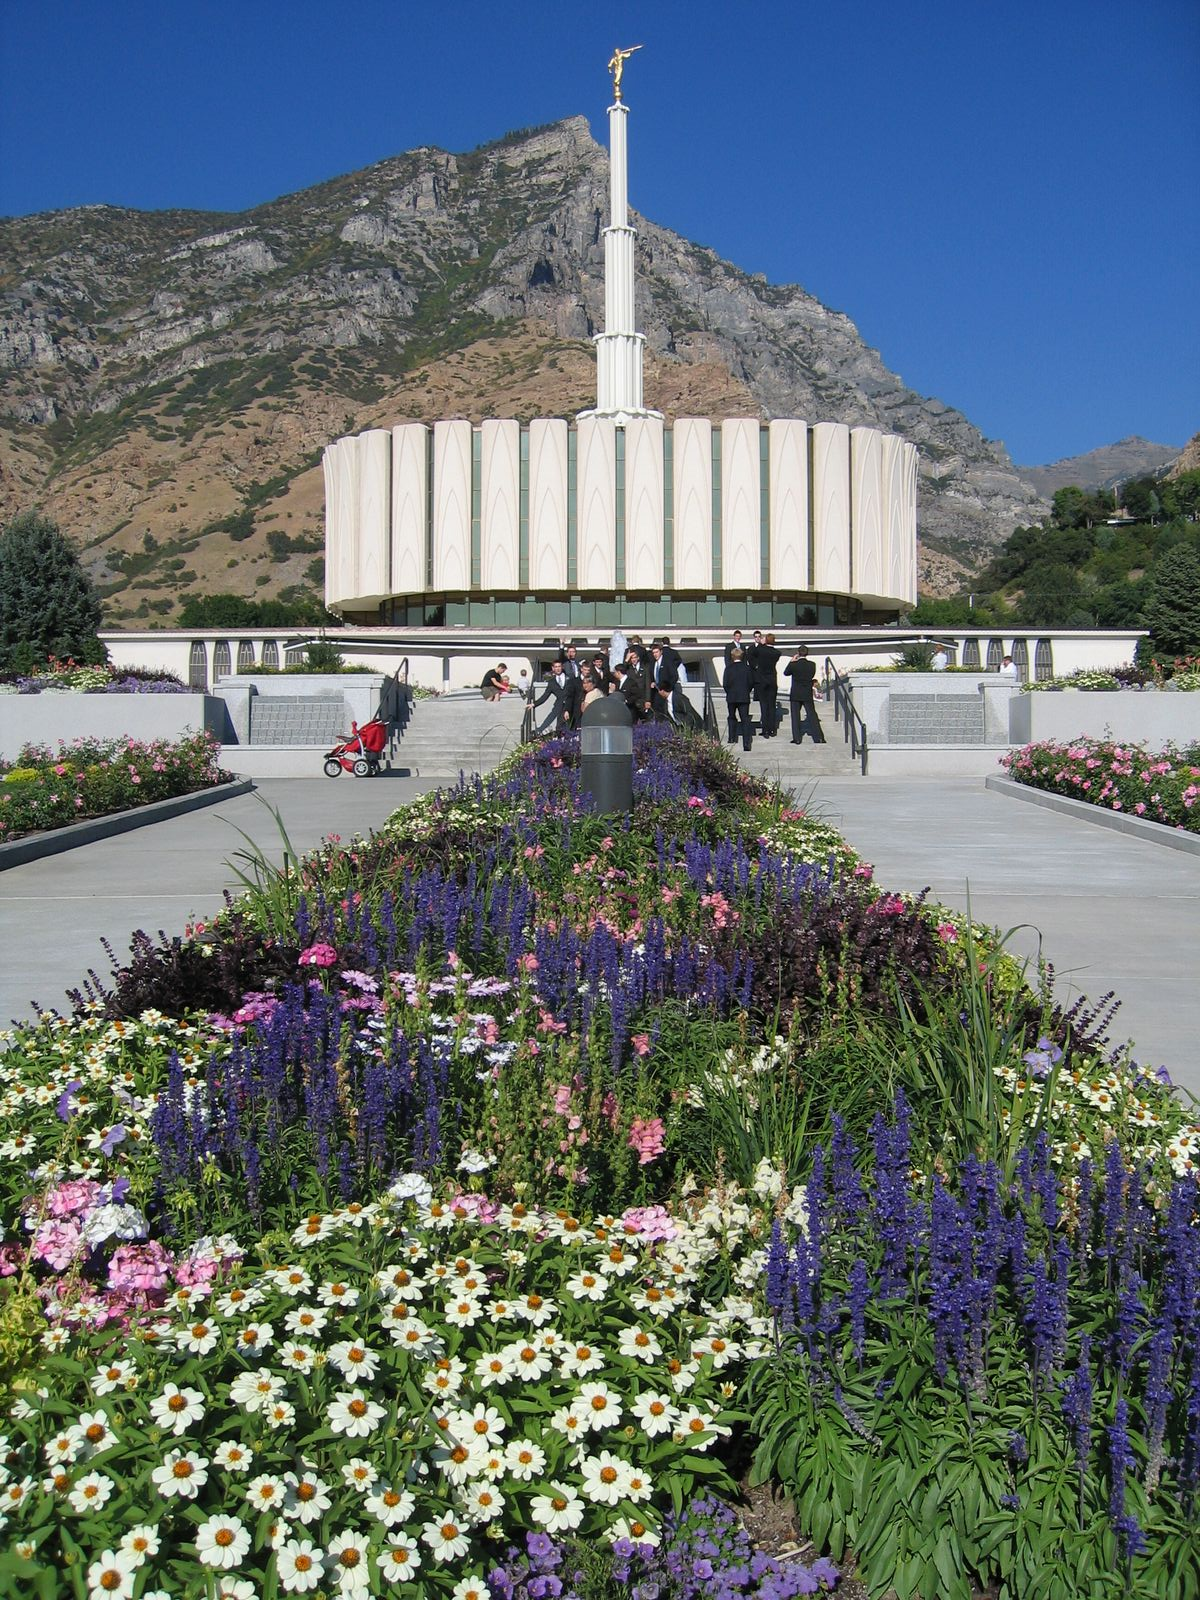 Flowers at the Provo Temple